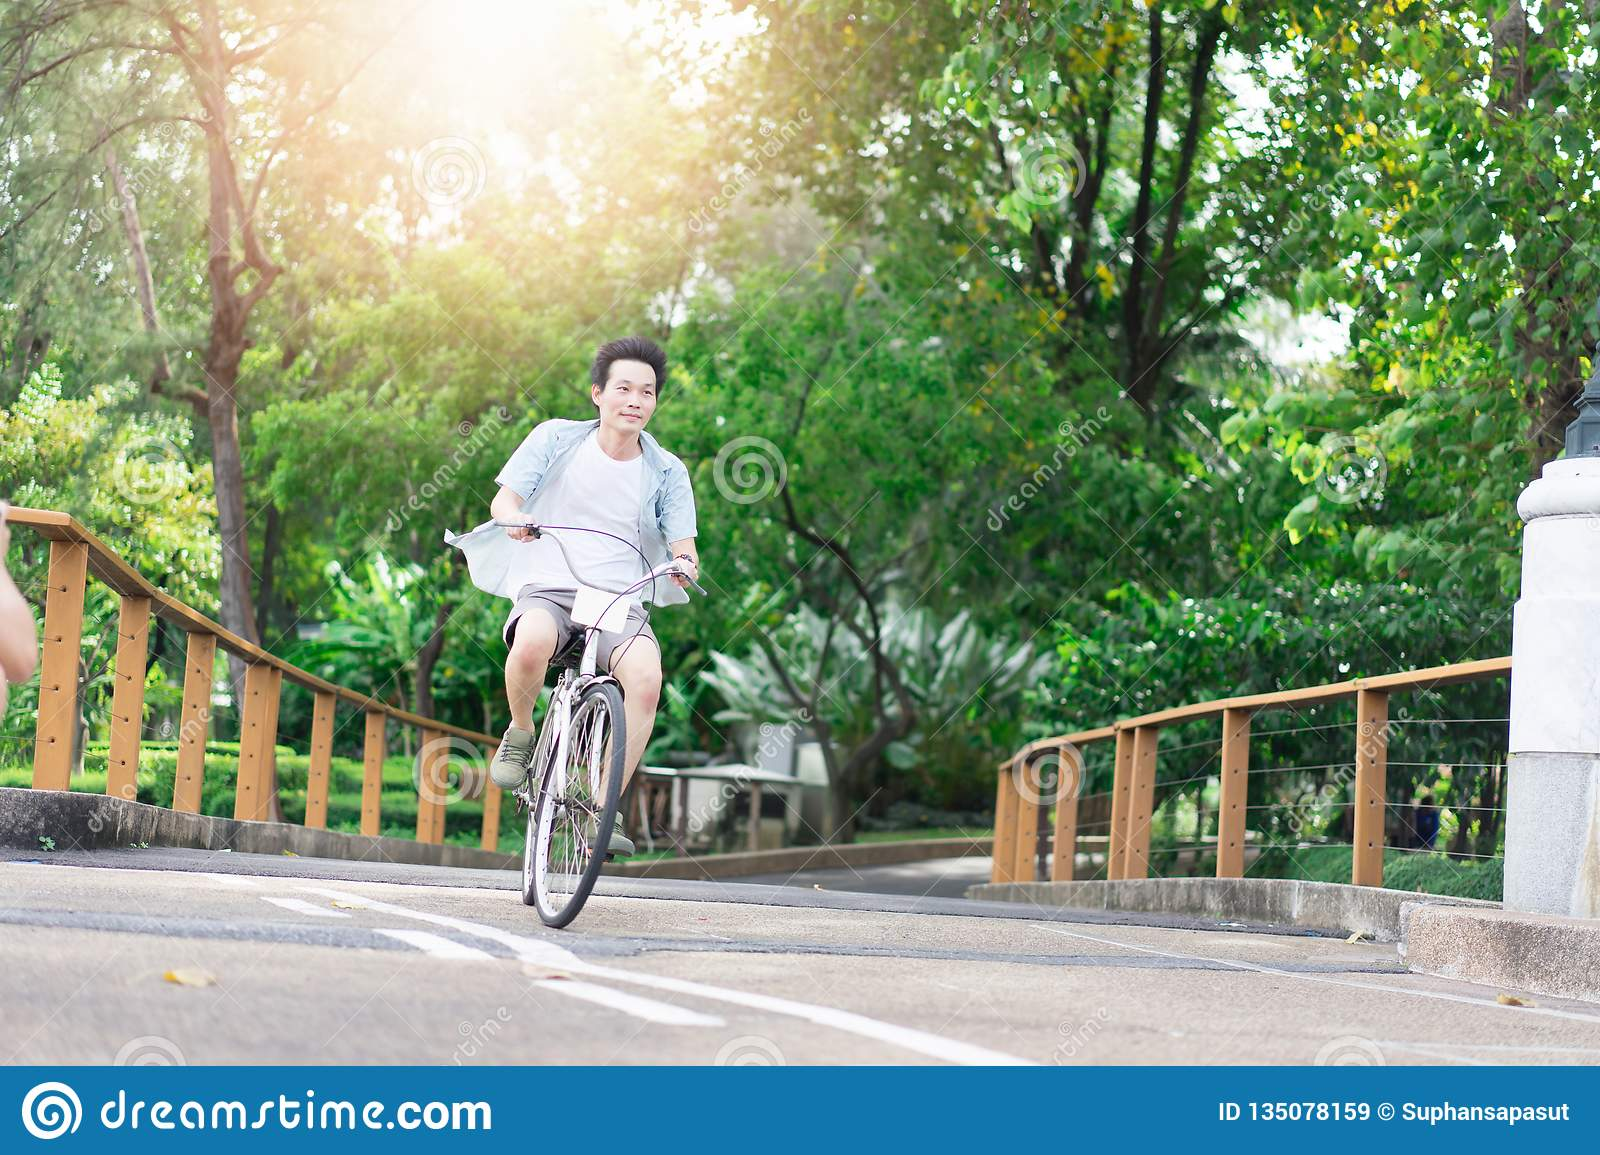 Asian man riding a bicycle for relaxation